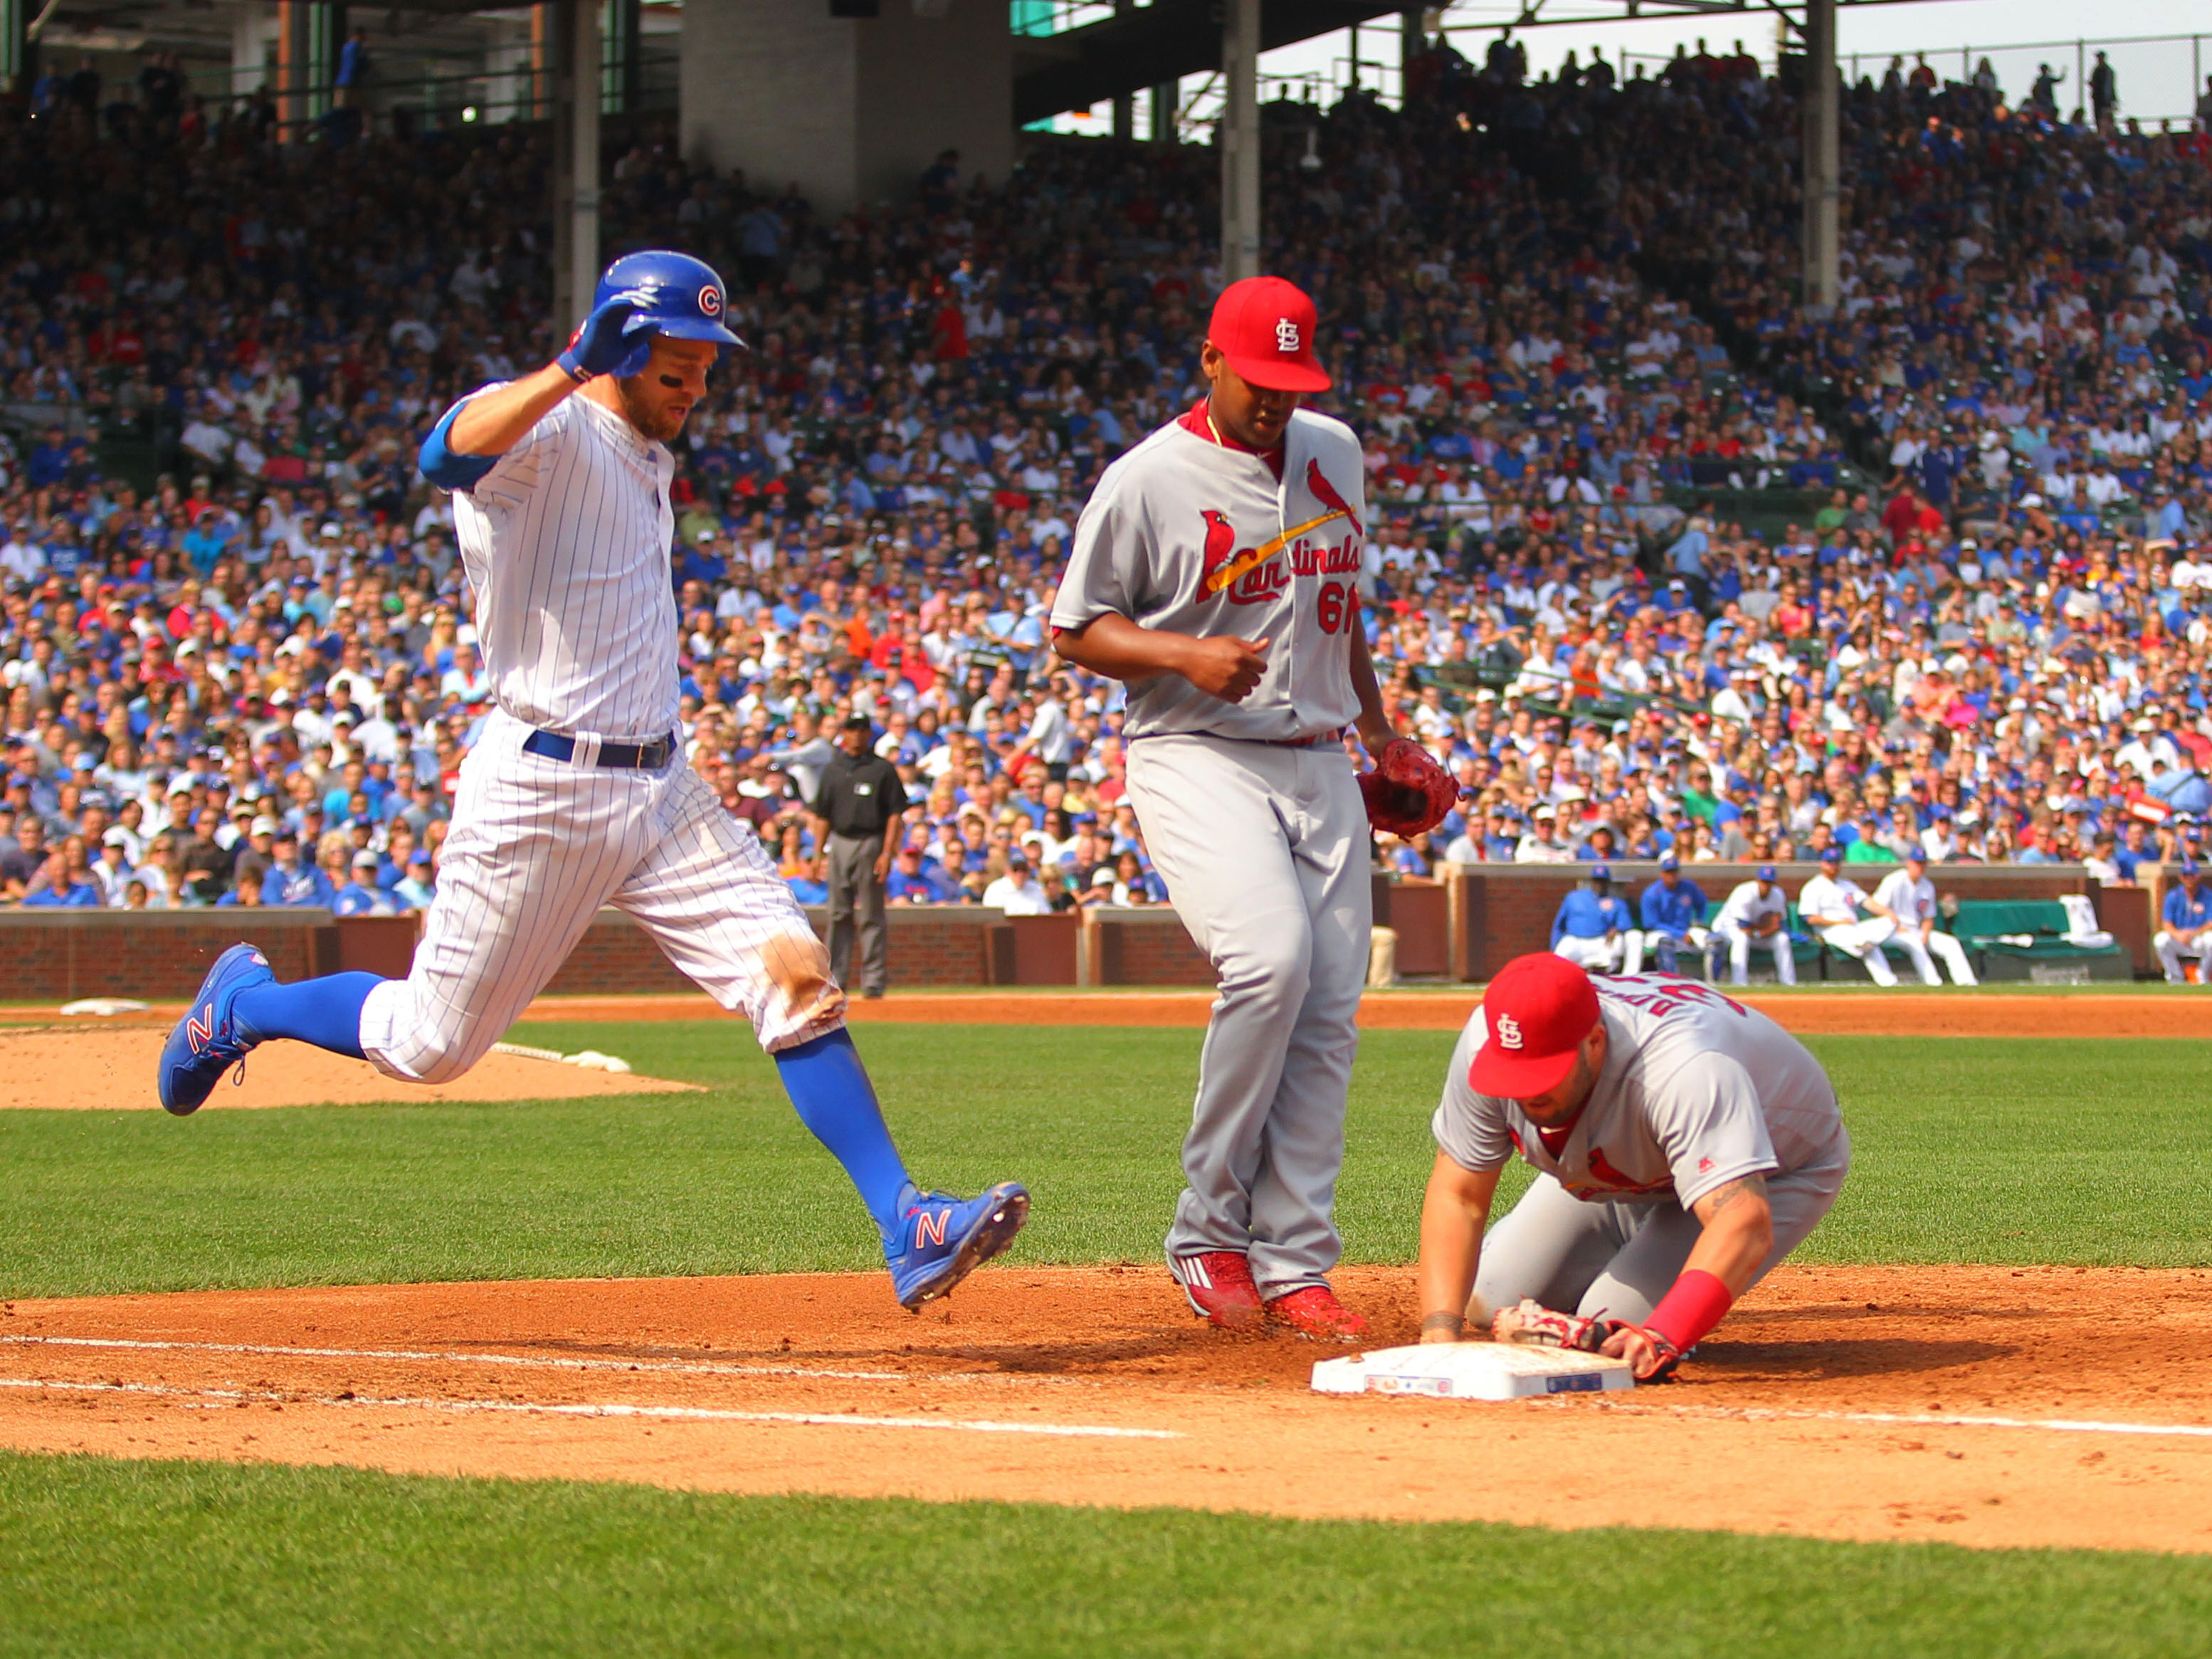 9560848-mlb-st.-louis-cardinals-at-chicago-cubs